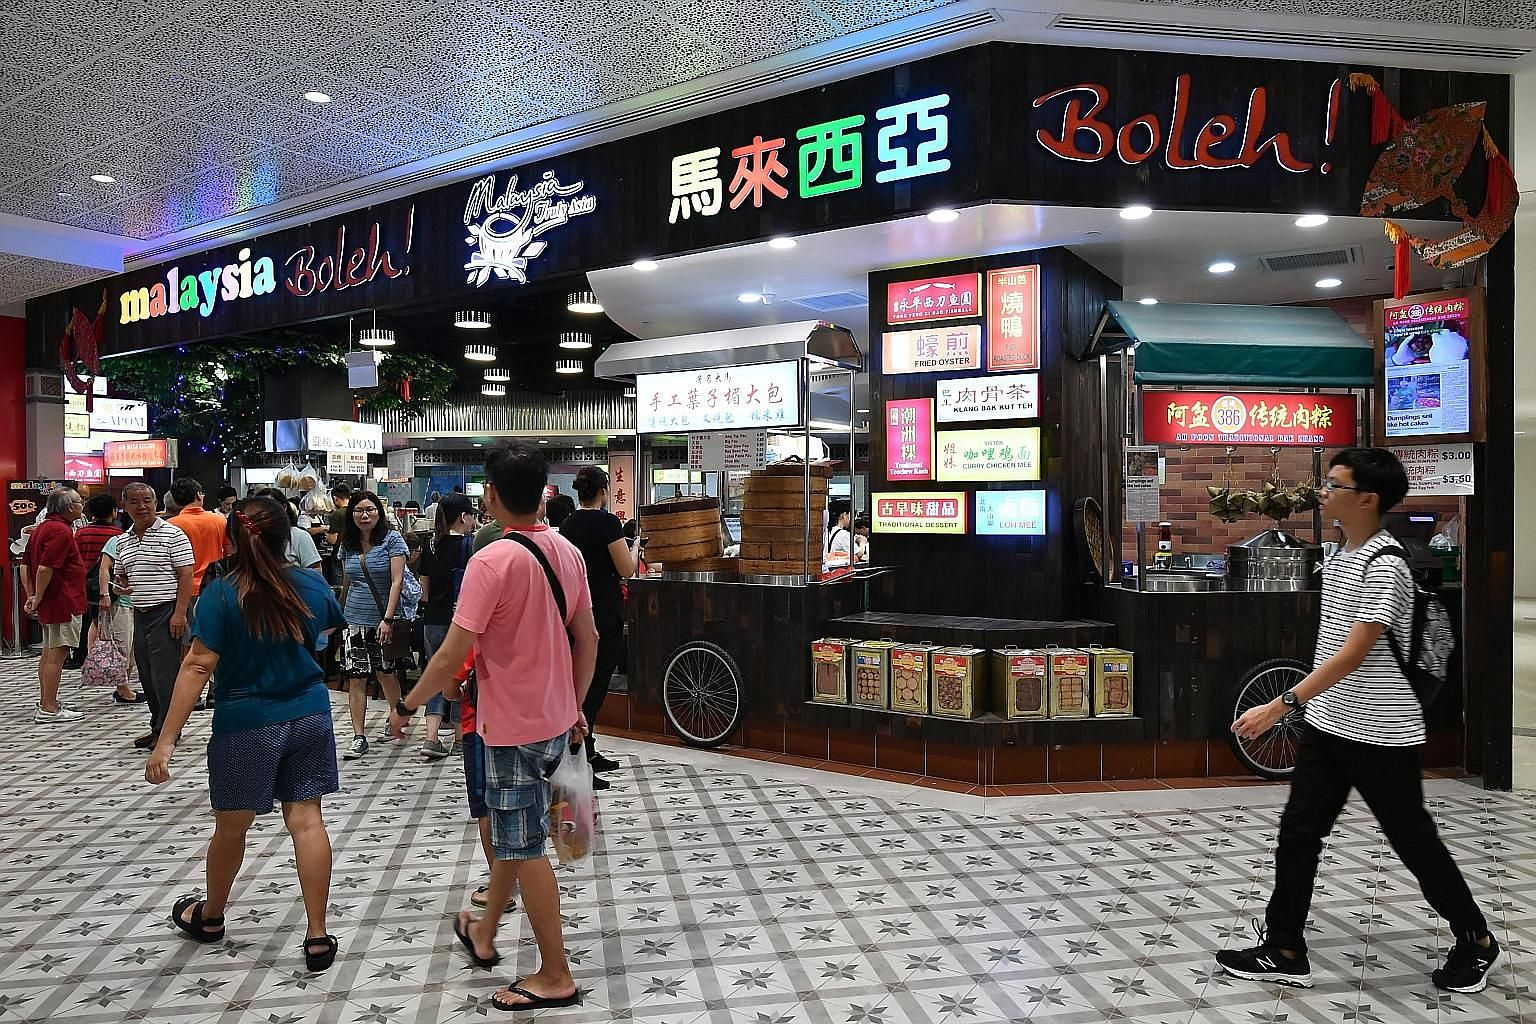 Malaysia Boleh! at AMK Hub, which opened last month, houses 25 stalls. Chendol at the Penang Hawkers' Fare buffet in York Hotel, which has returned for the third time this year.